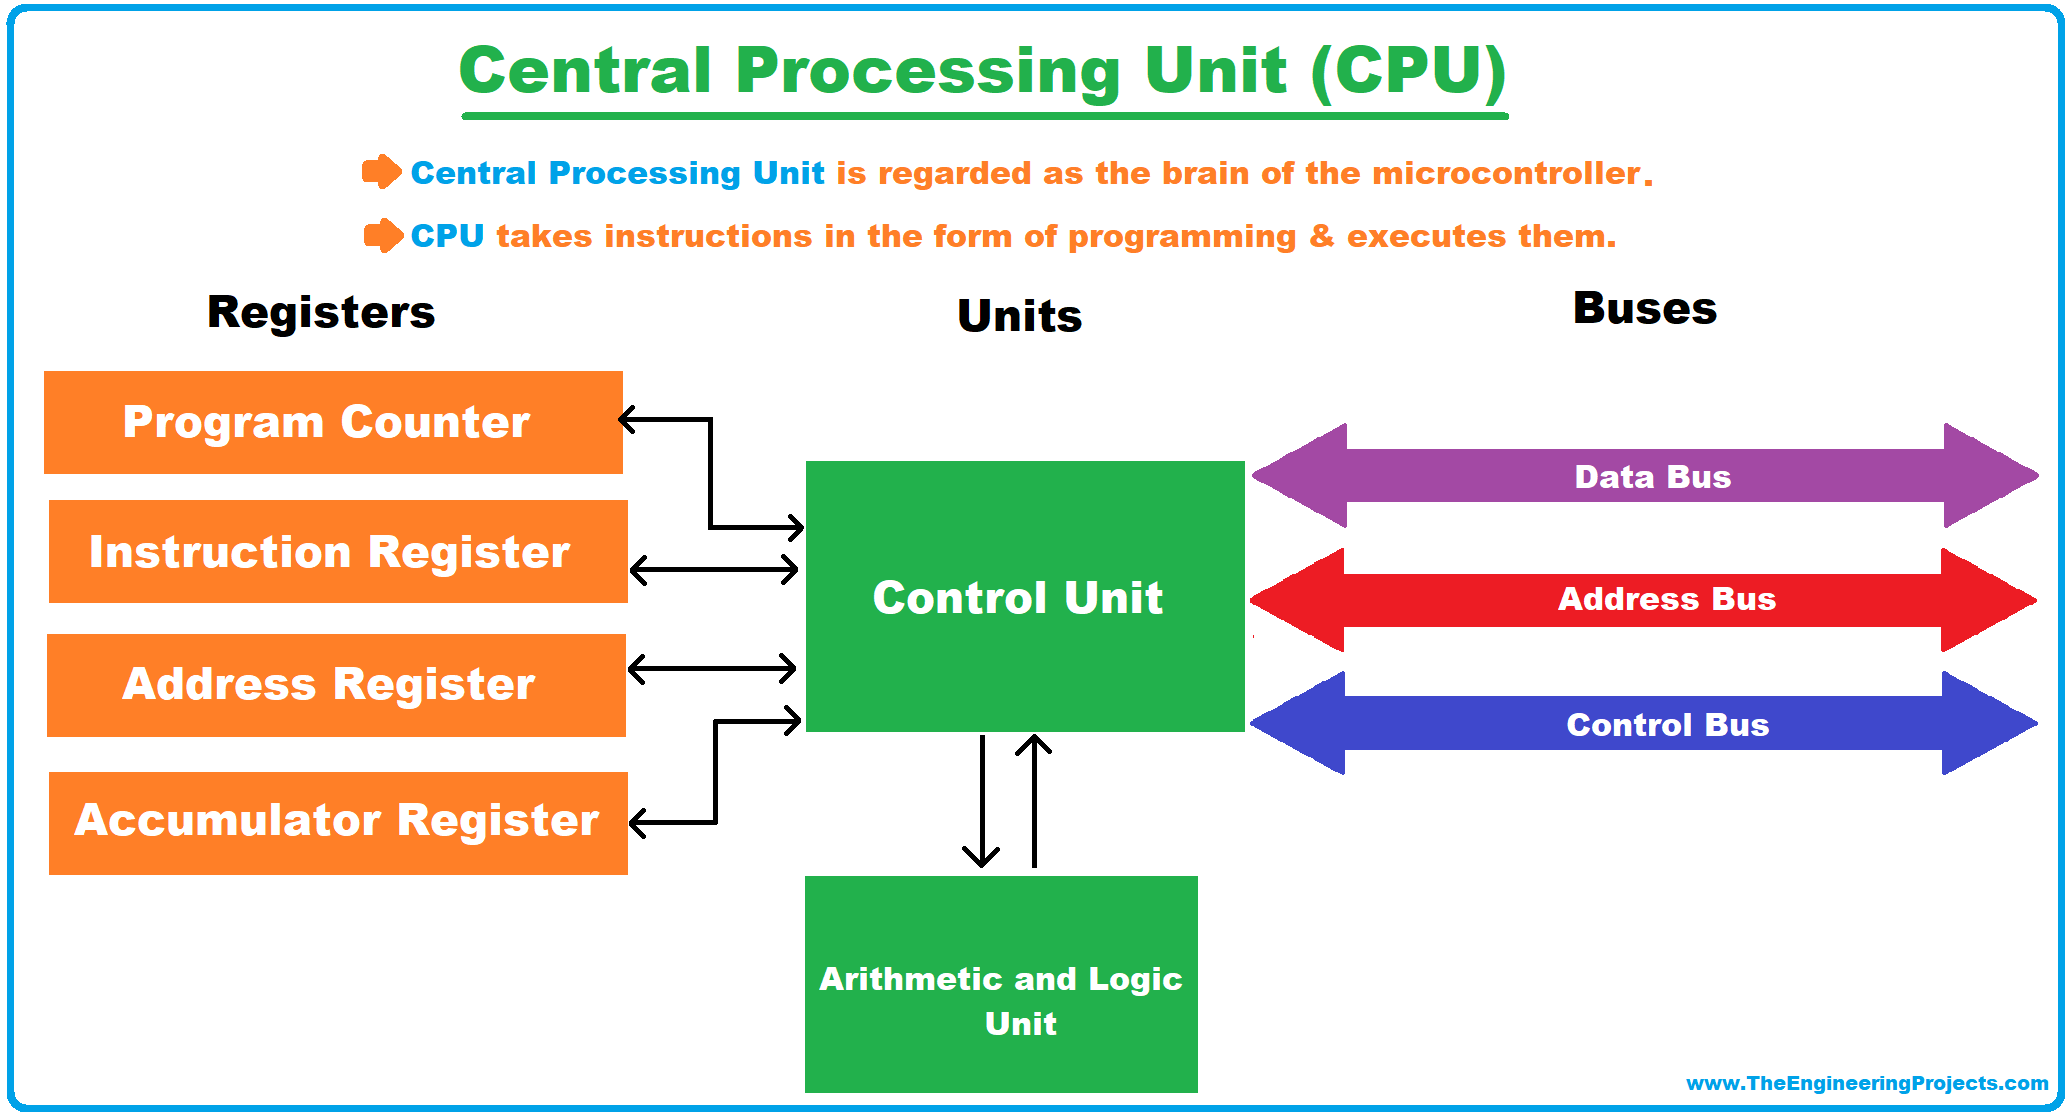 What is a Microcontroller, Microcontrollers Compilers, Microcontrollers Architecture, Types of Microcontrollers, Microcontroller Vs Microprocessor, Microcontroller Characteristics, Microcontrollers Applications, cpu